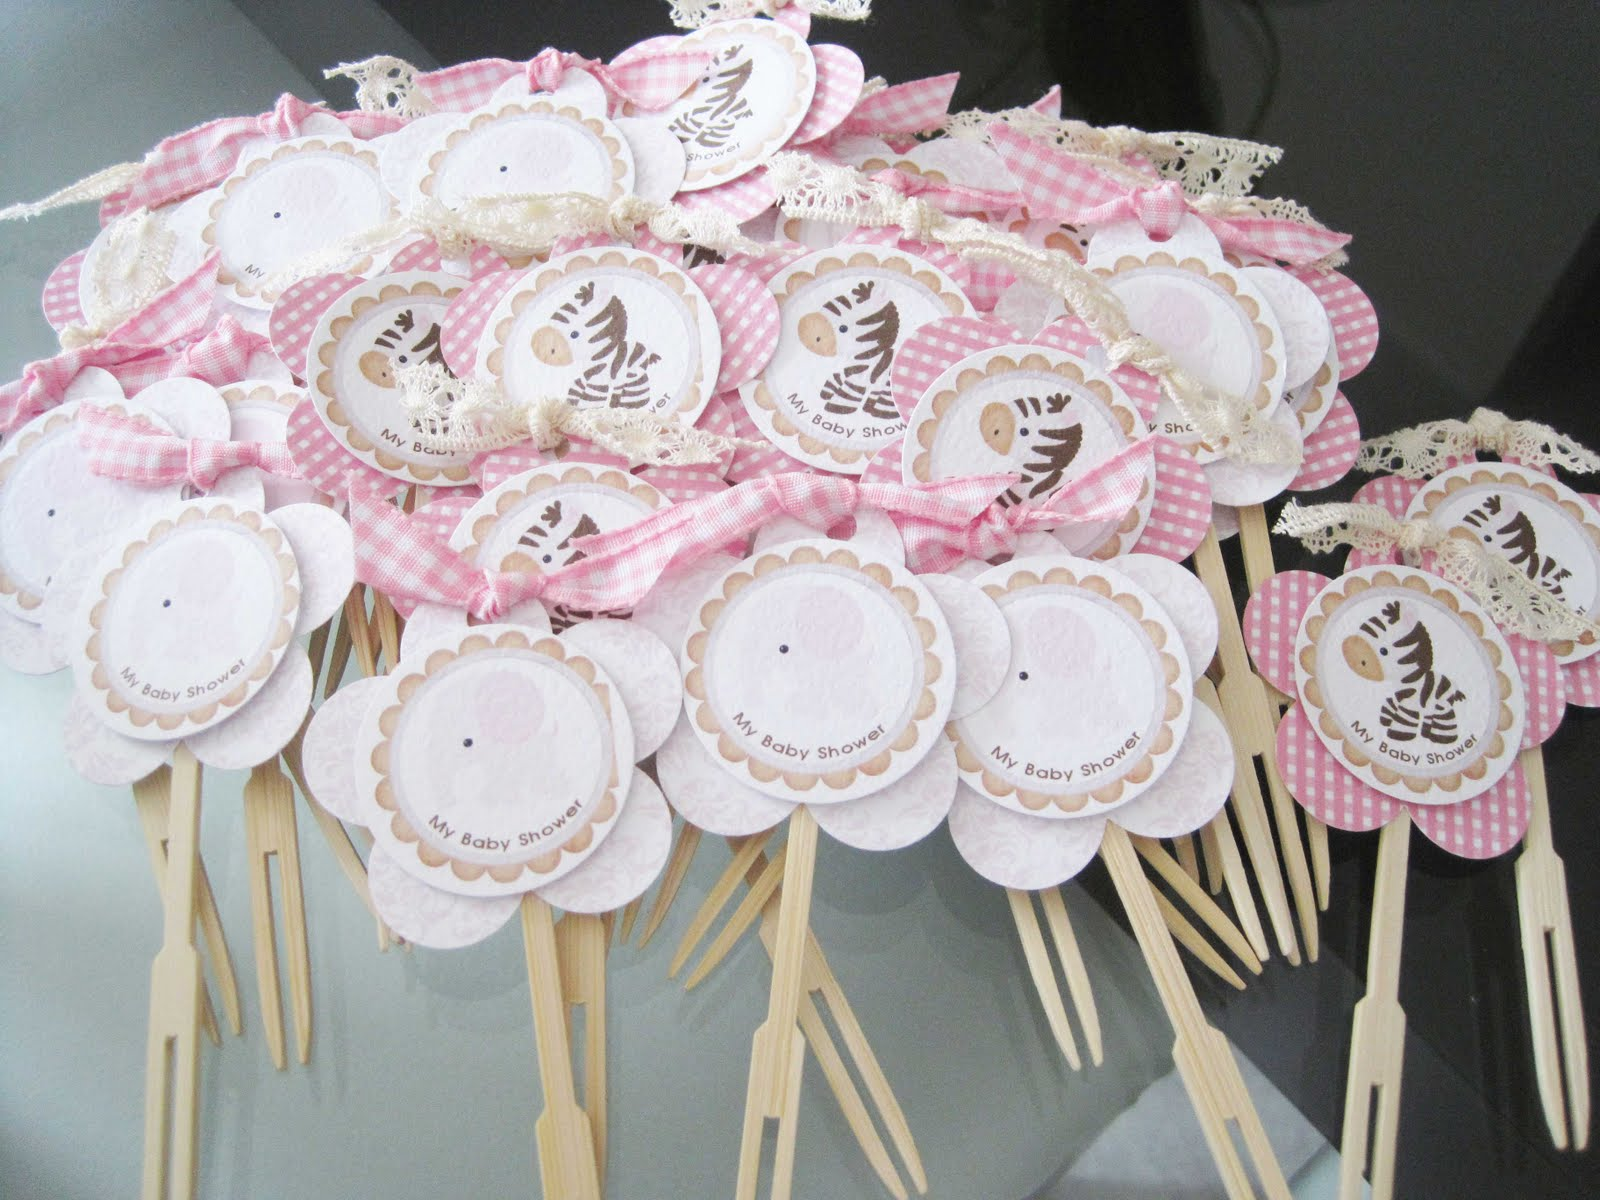 Moms angels decoracion mesa y recordatorios baby shower ni a for Decoracion baby shower nina